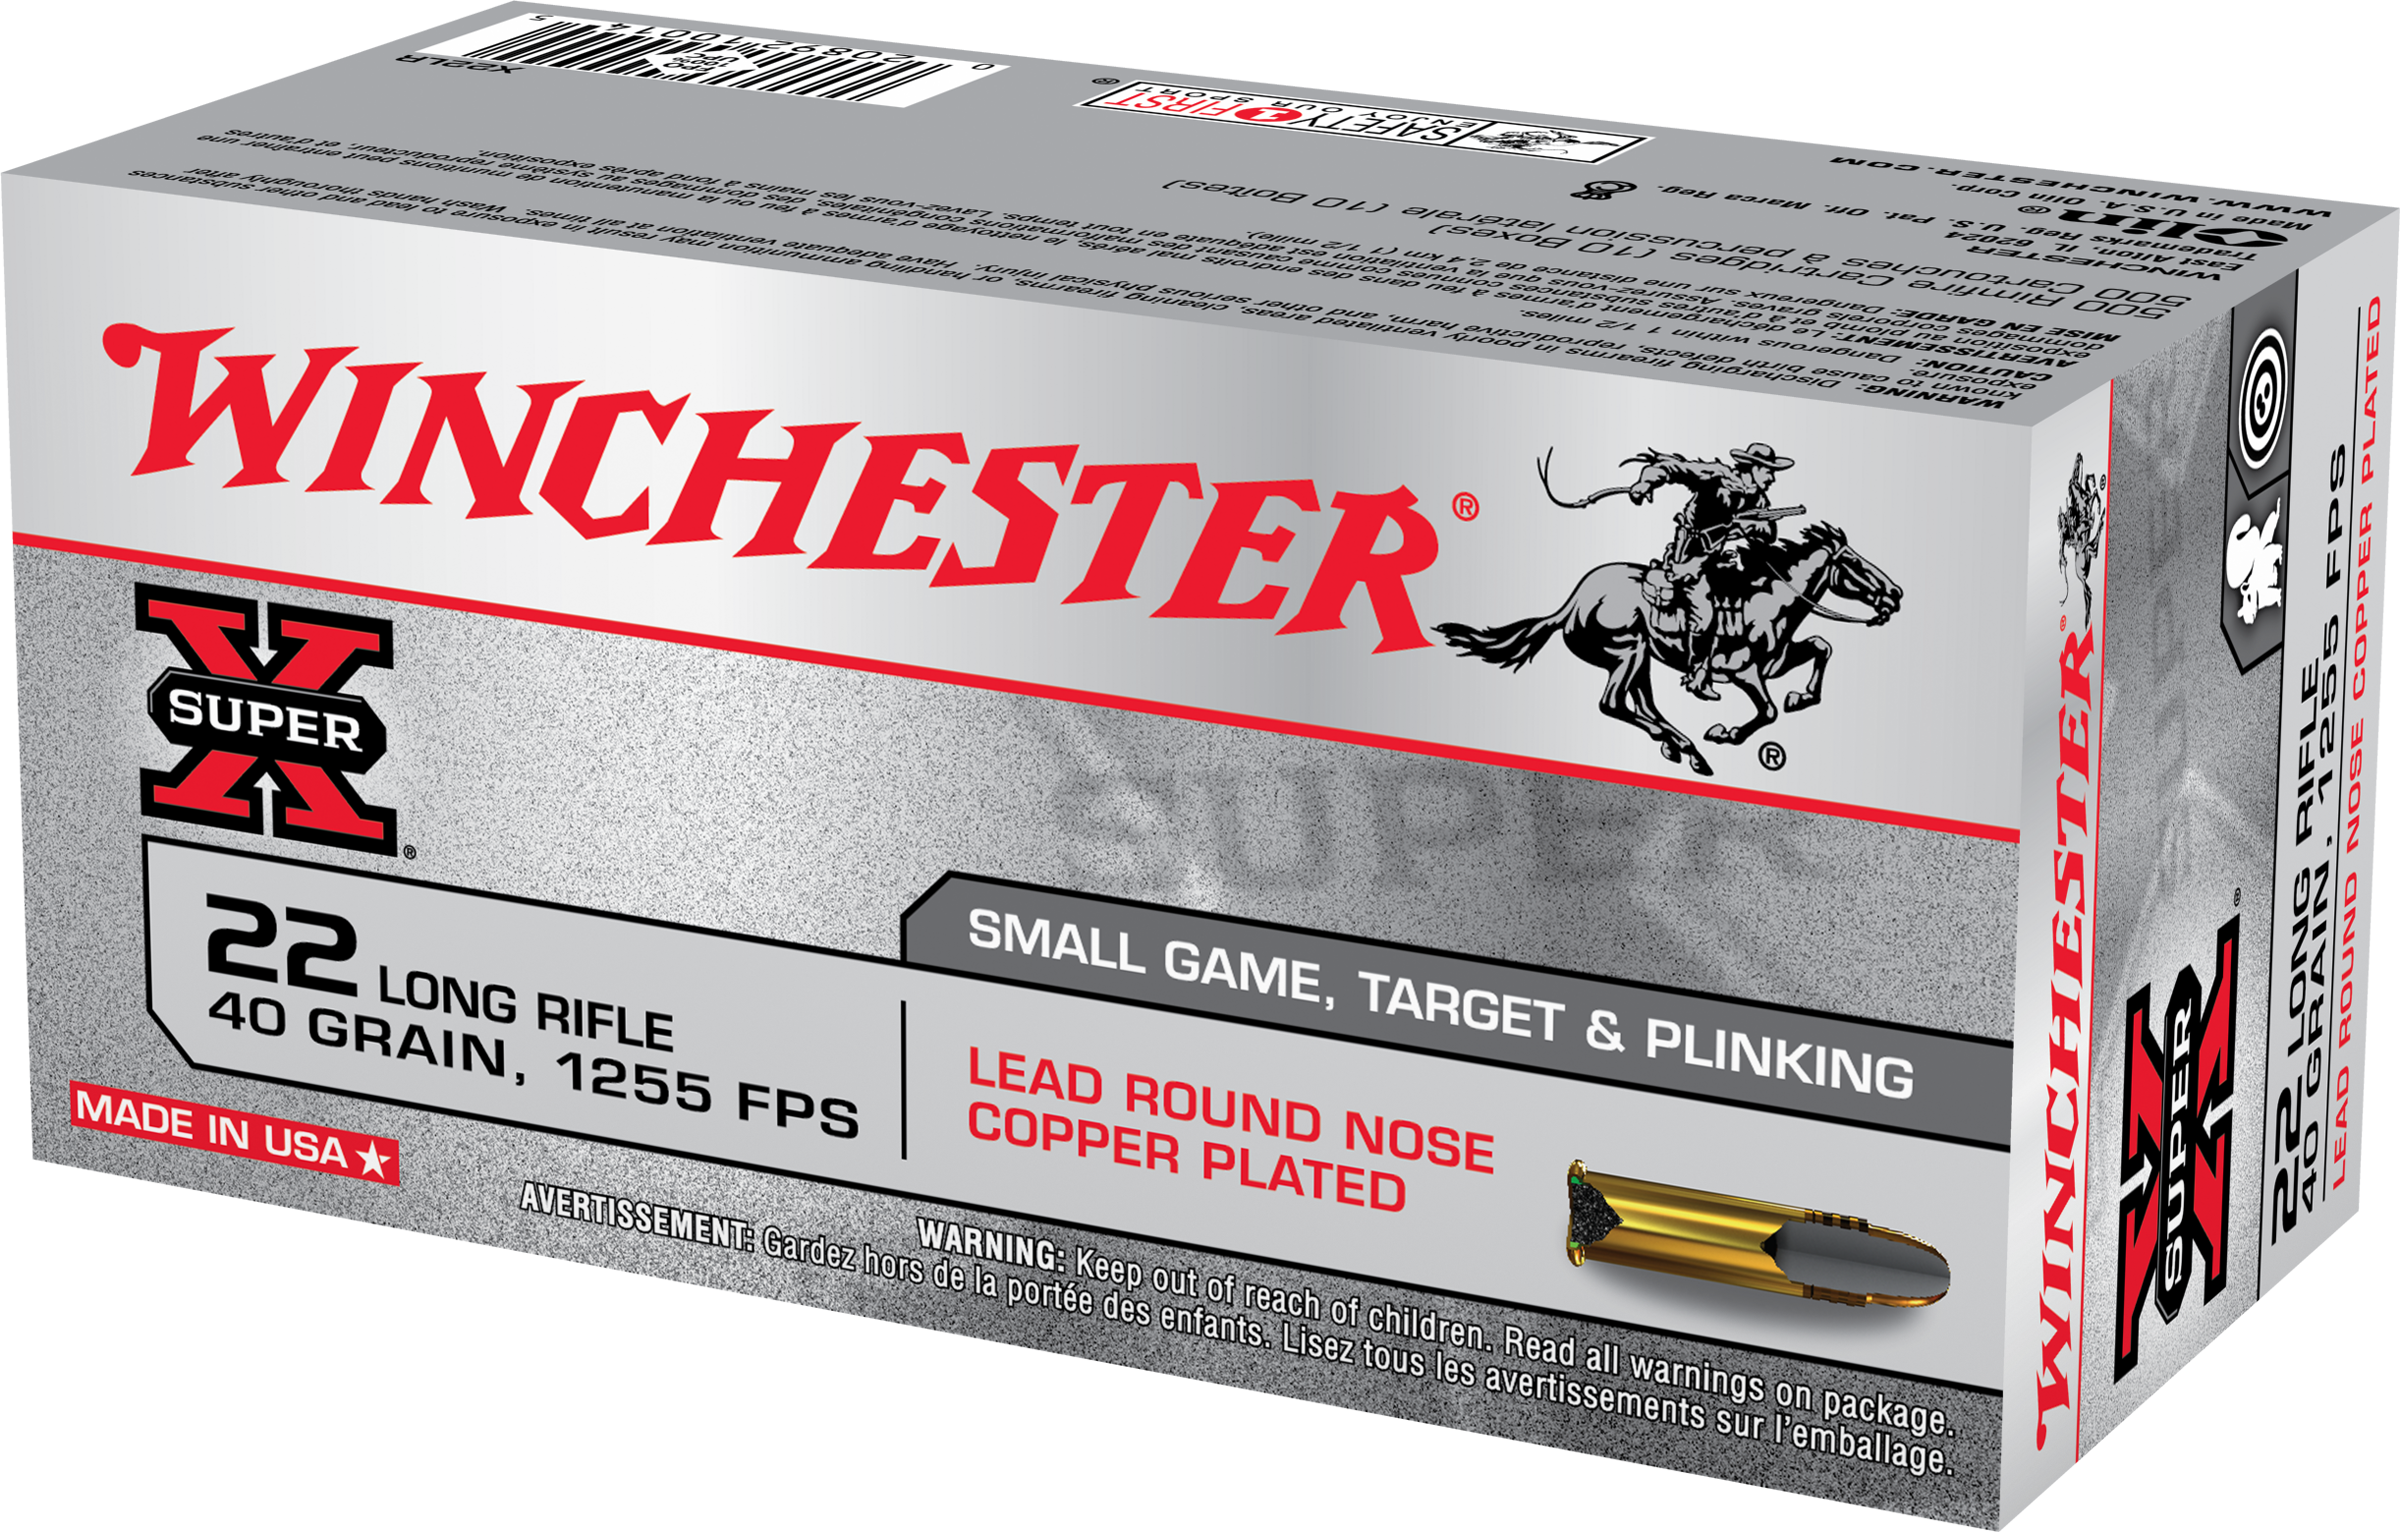 Winchester Super-X Ammunition 22 Long Rifle 40 Grain Copper Plated Round Nose Per 50